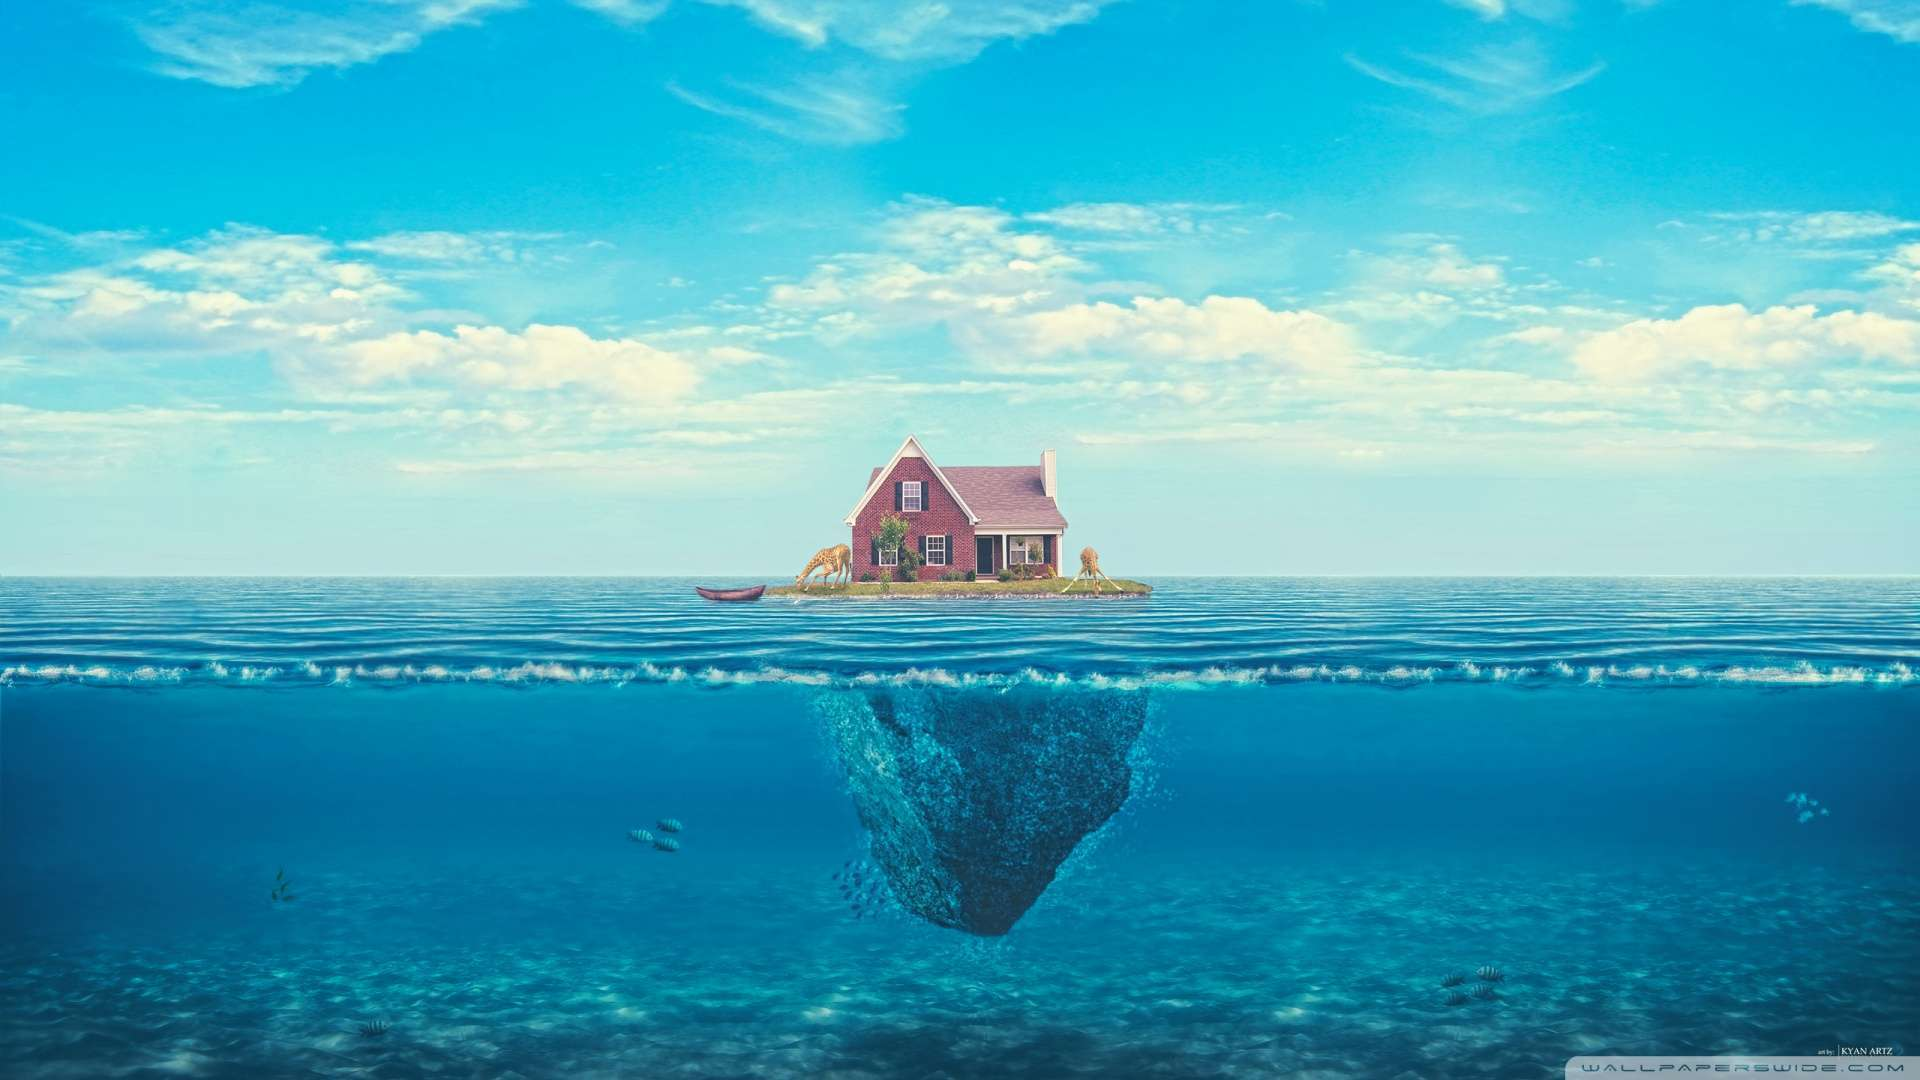 Wallpaper House On The Ocean Wallpaper 1080p HD Upload at December 1920x1080